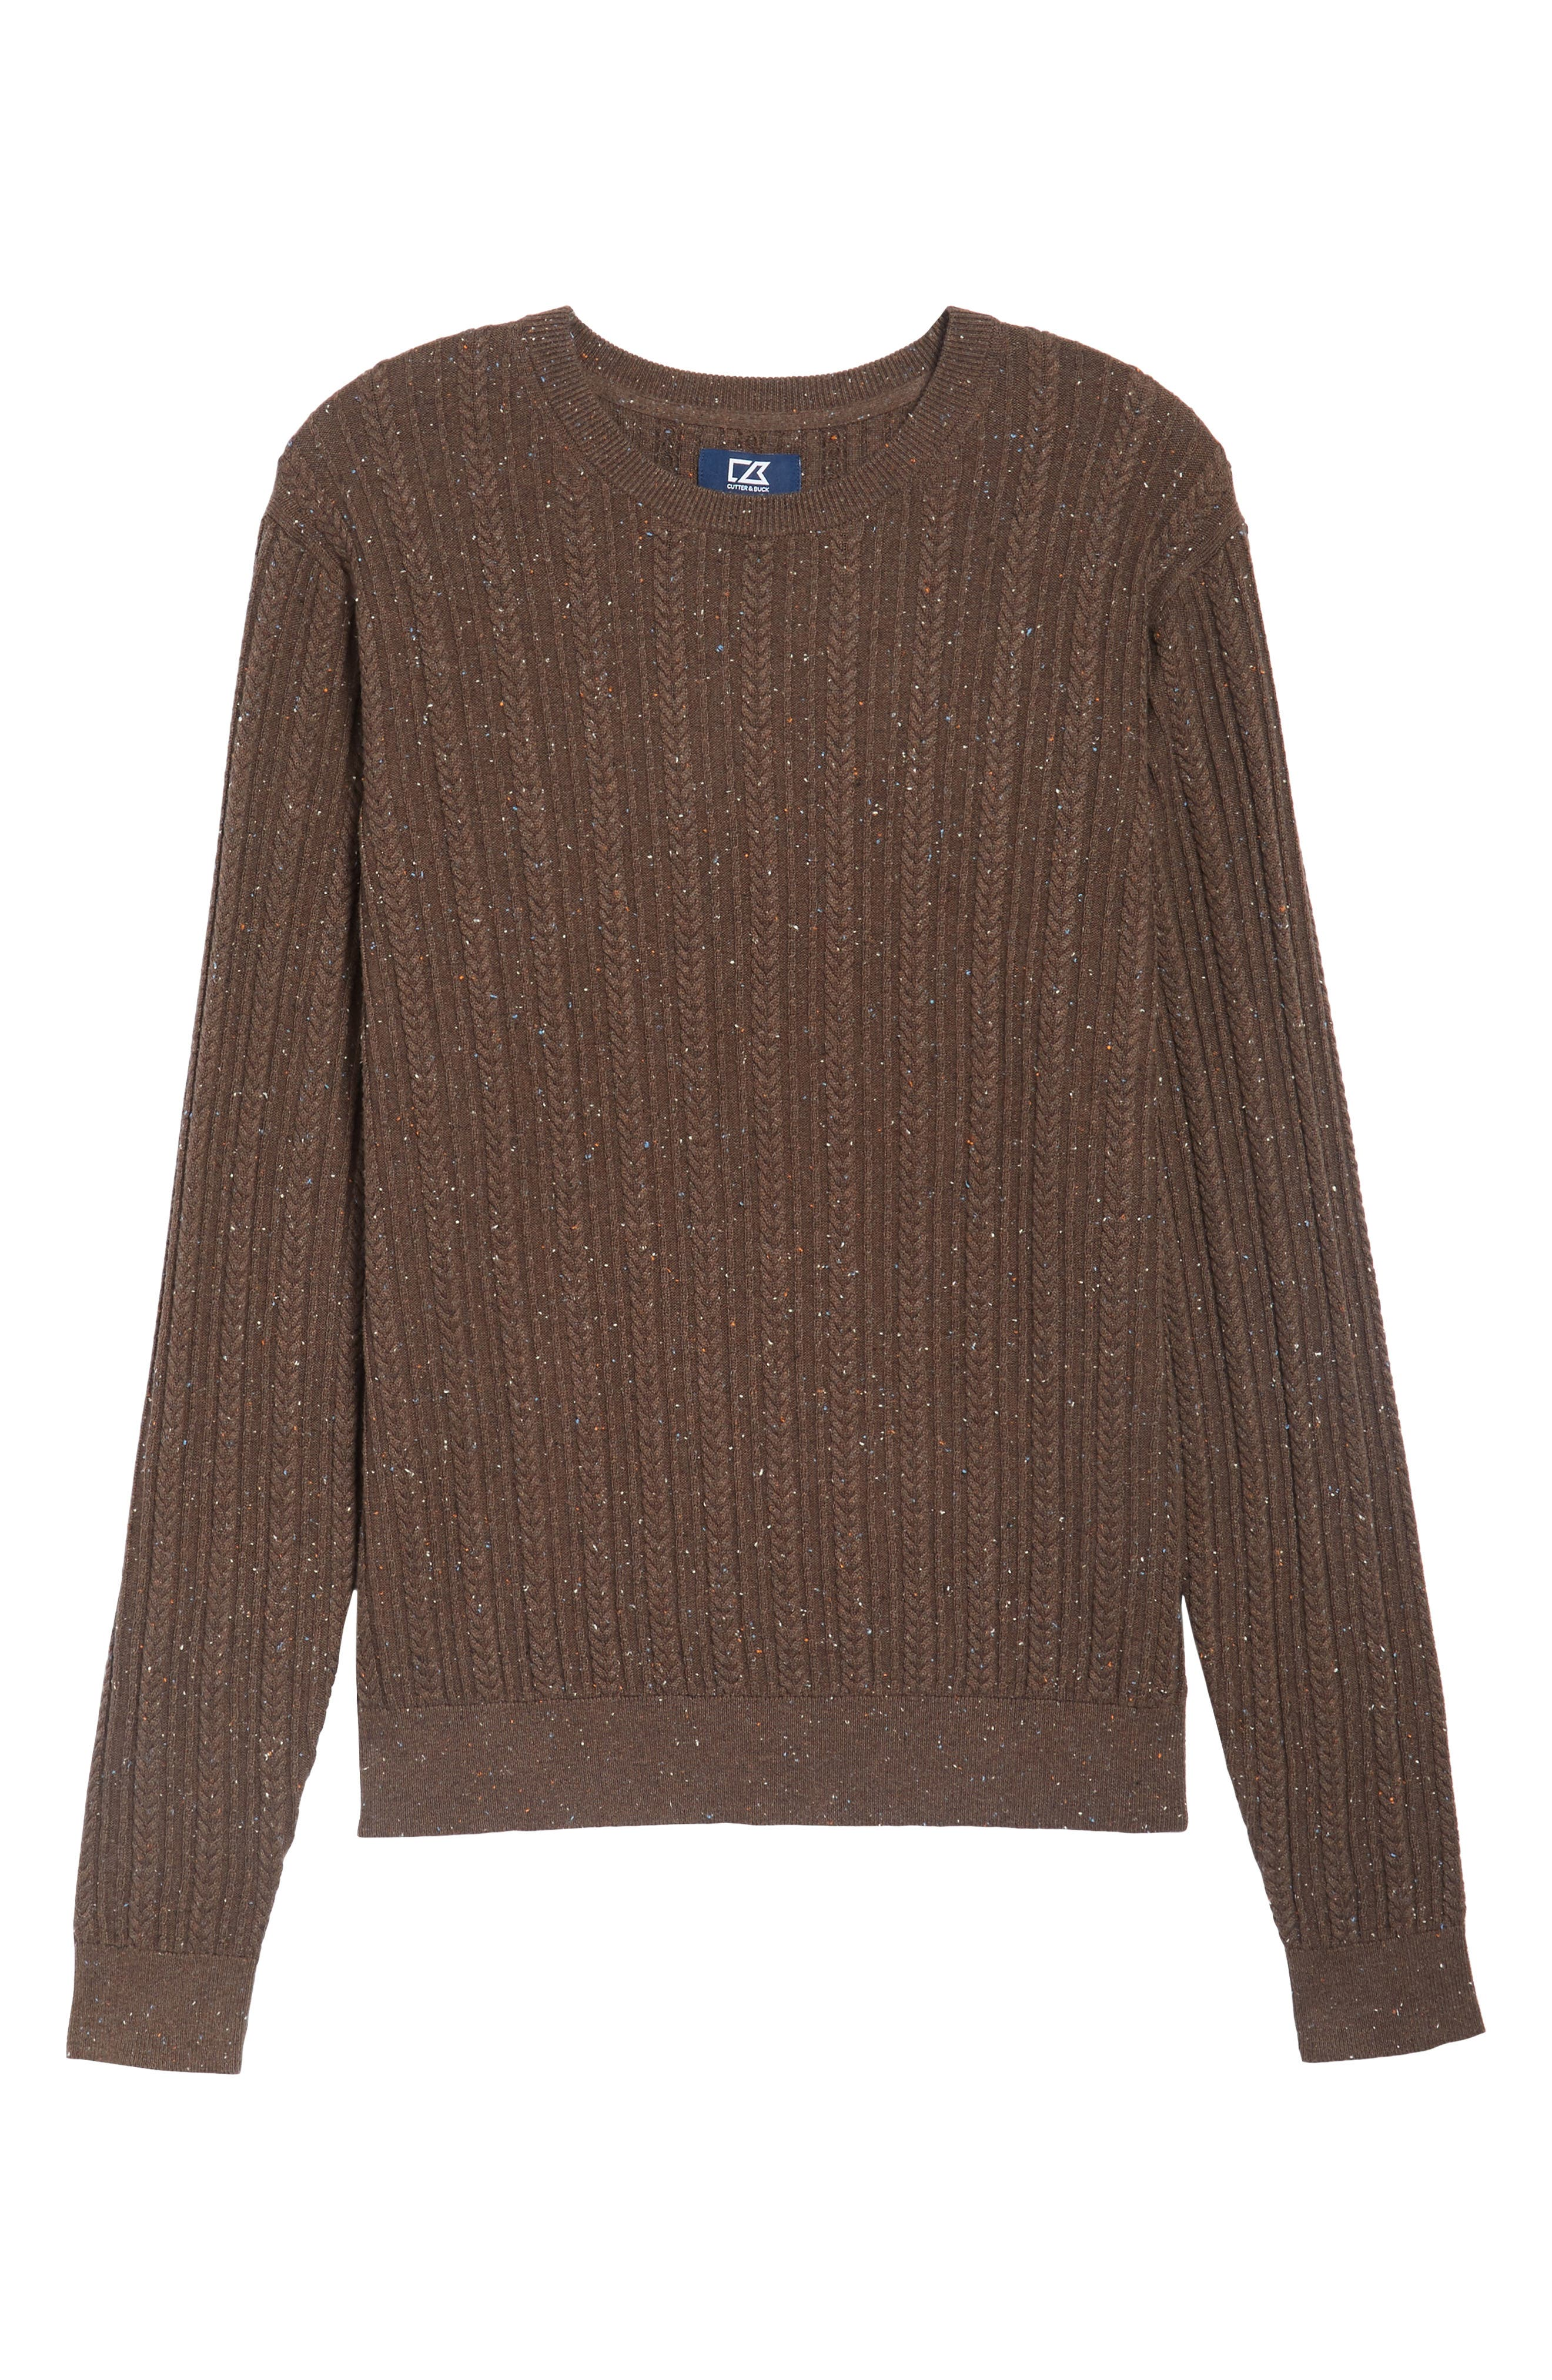 Carlton Crewneck Sweater,                             Alternate thumbnail 6, color,                             Twig